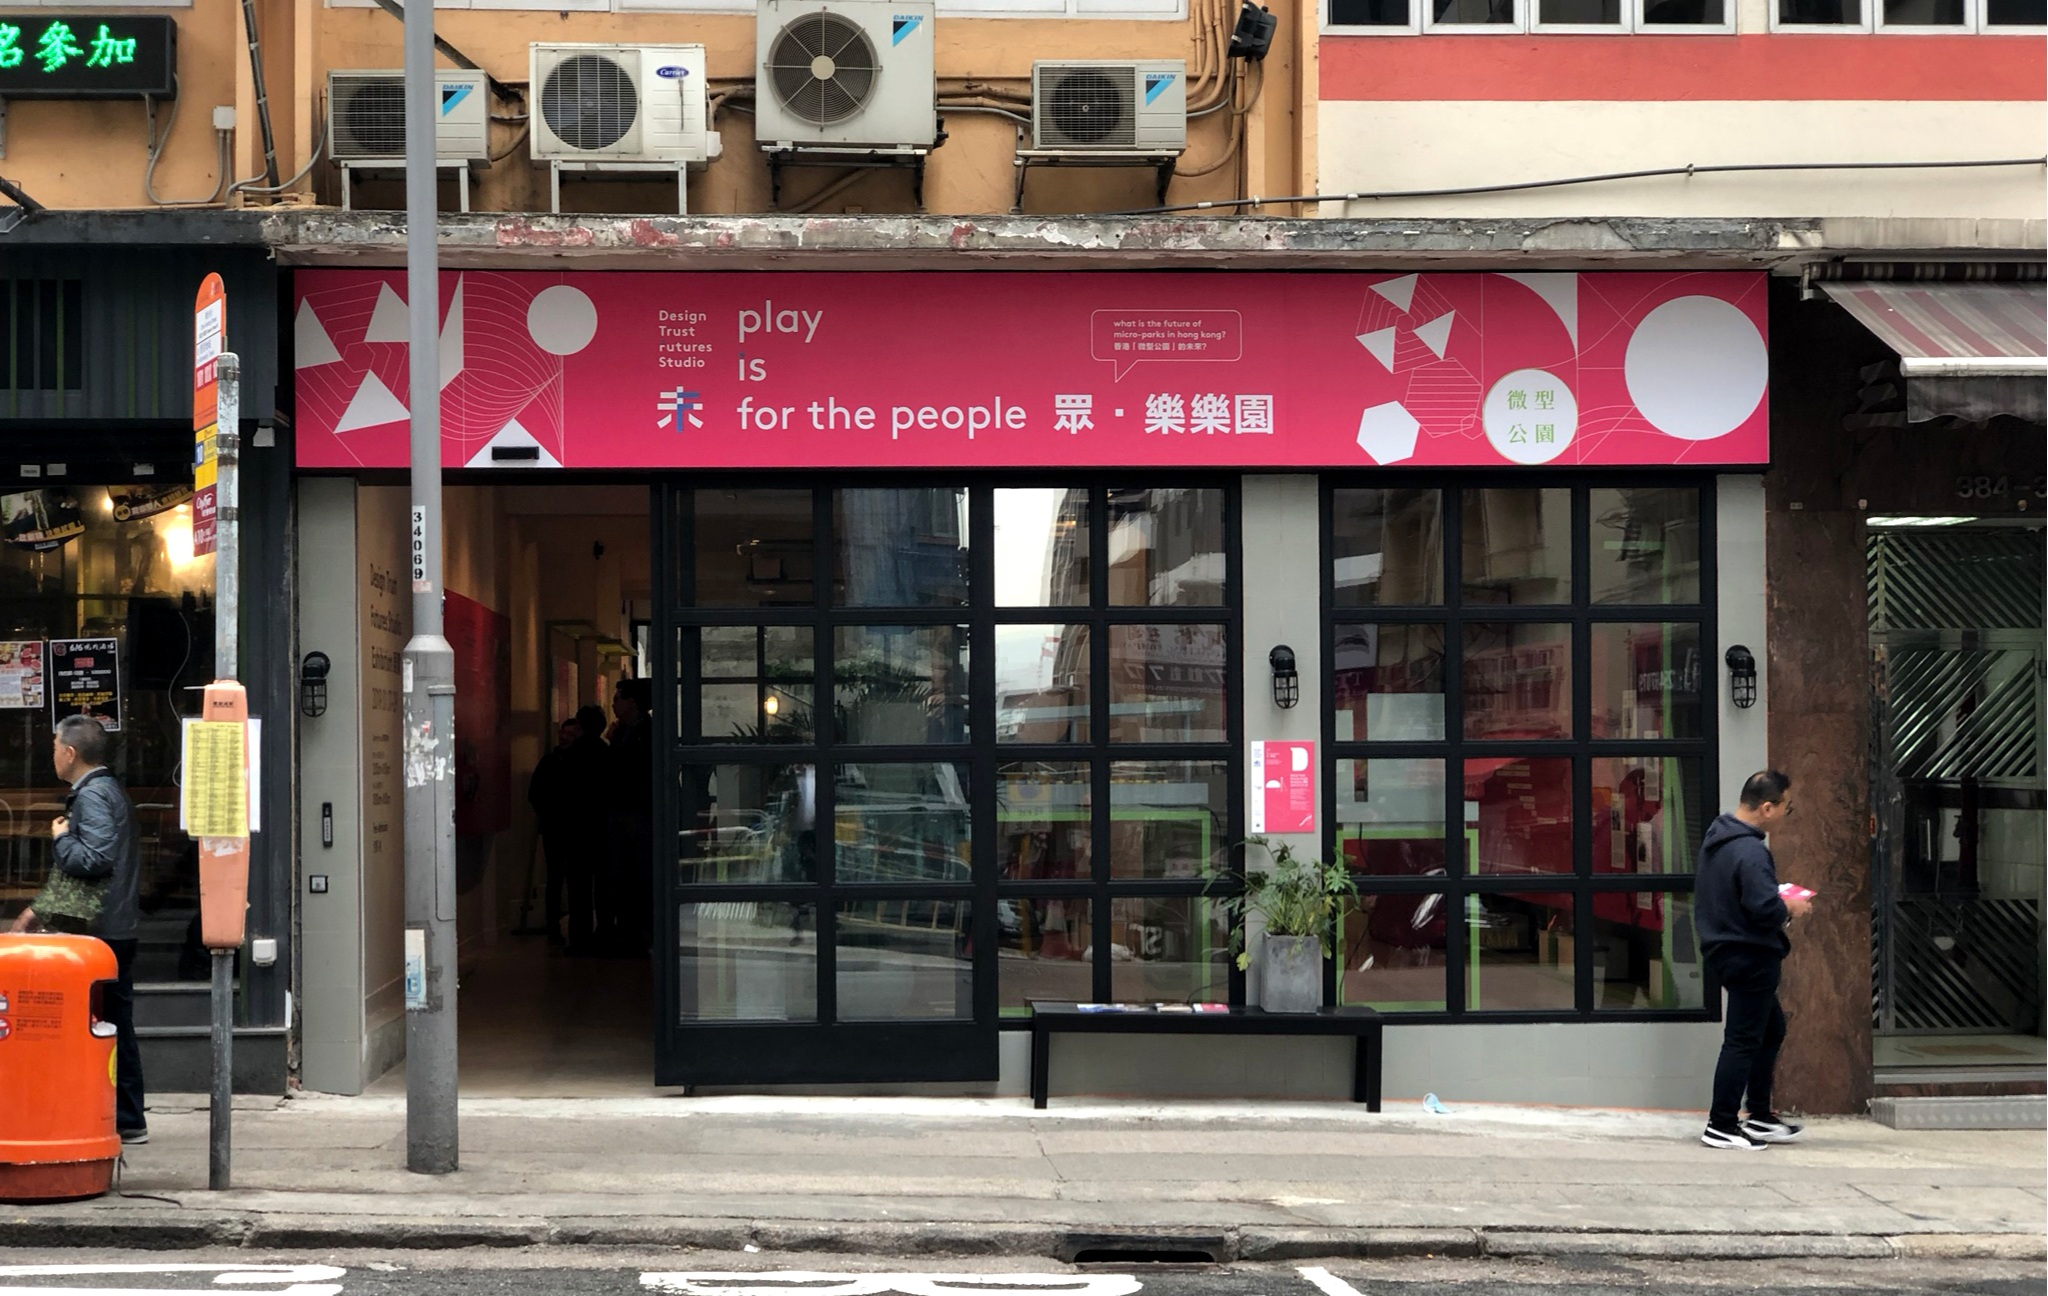 Design+Trust+Future+Studio+Exhibition_Play+is+For+the+People.jpg